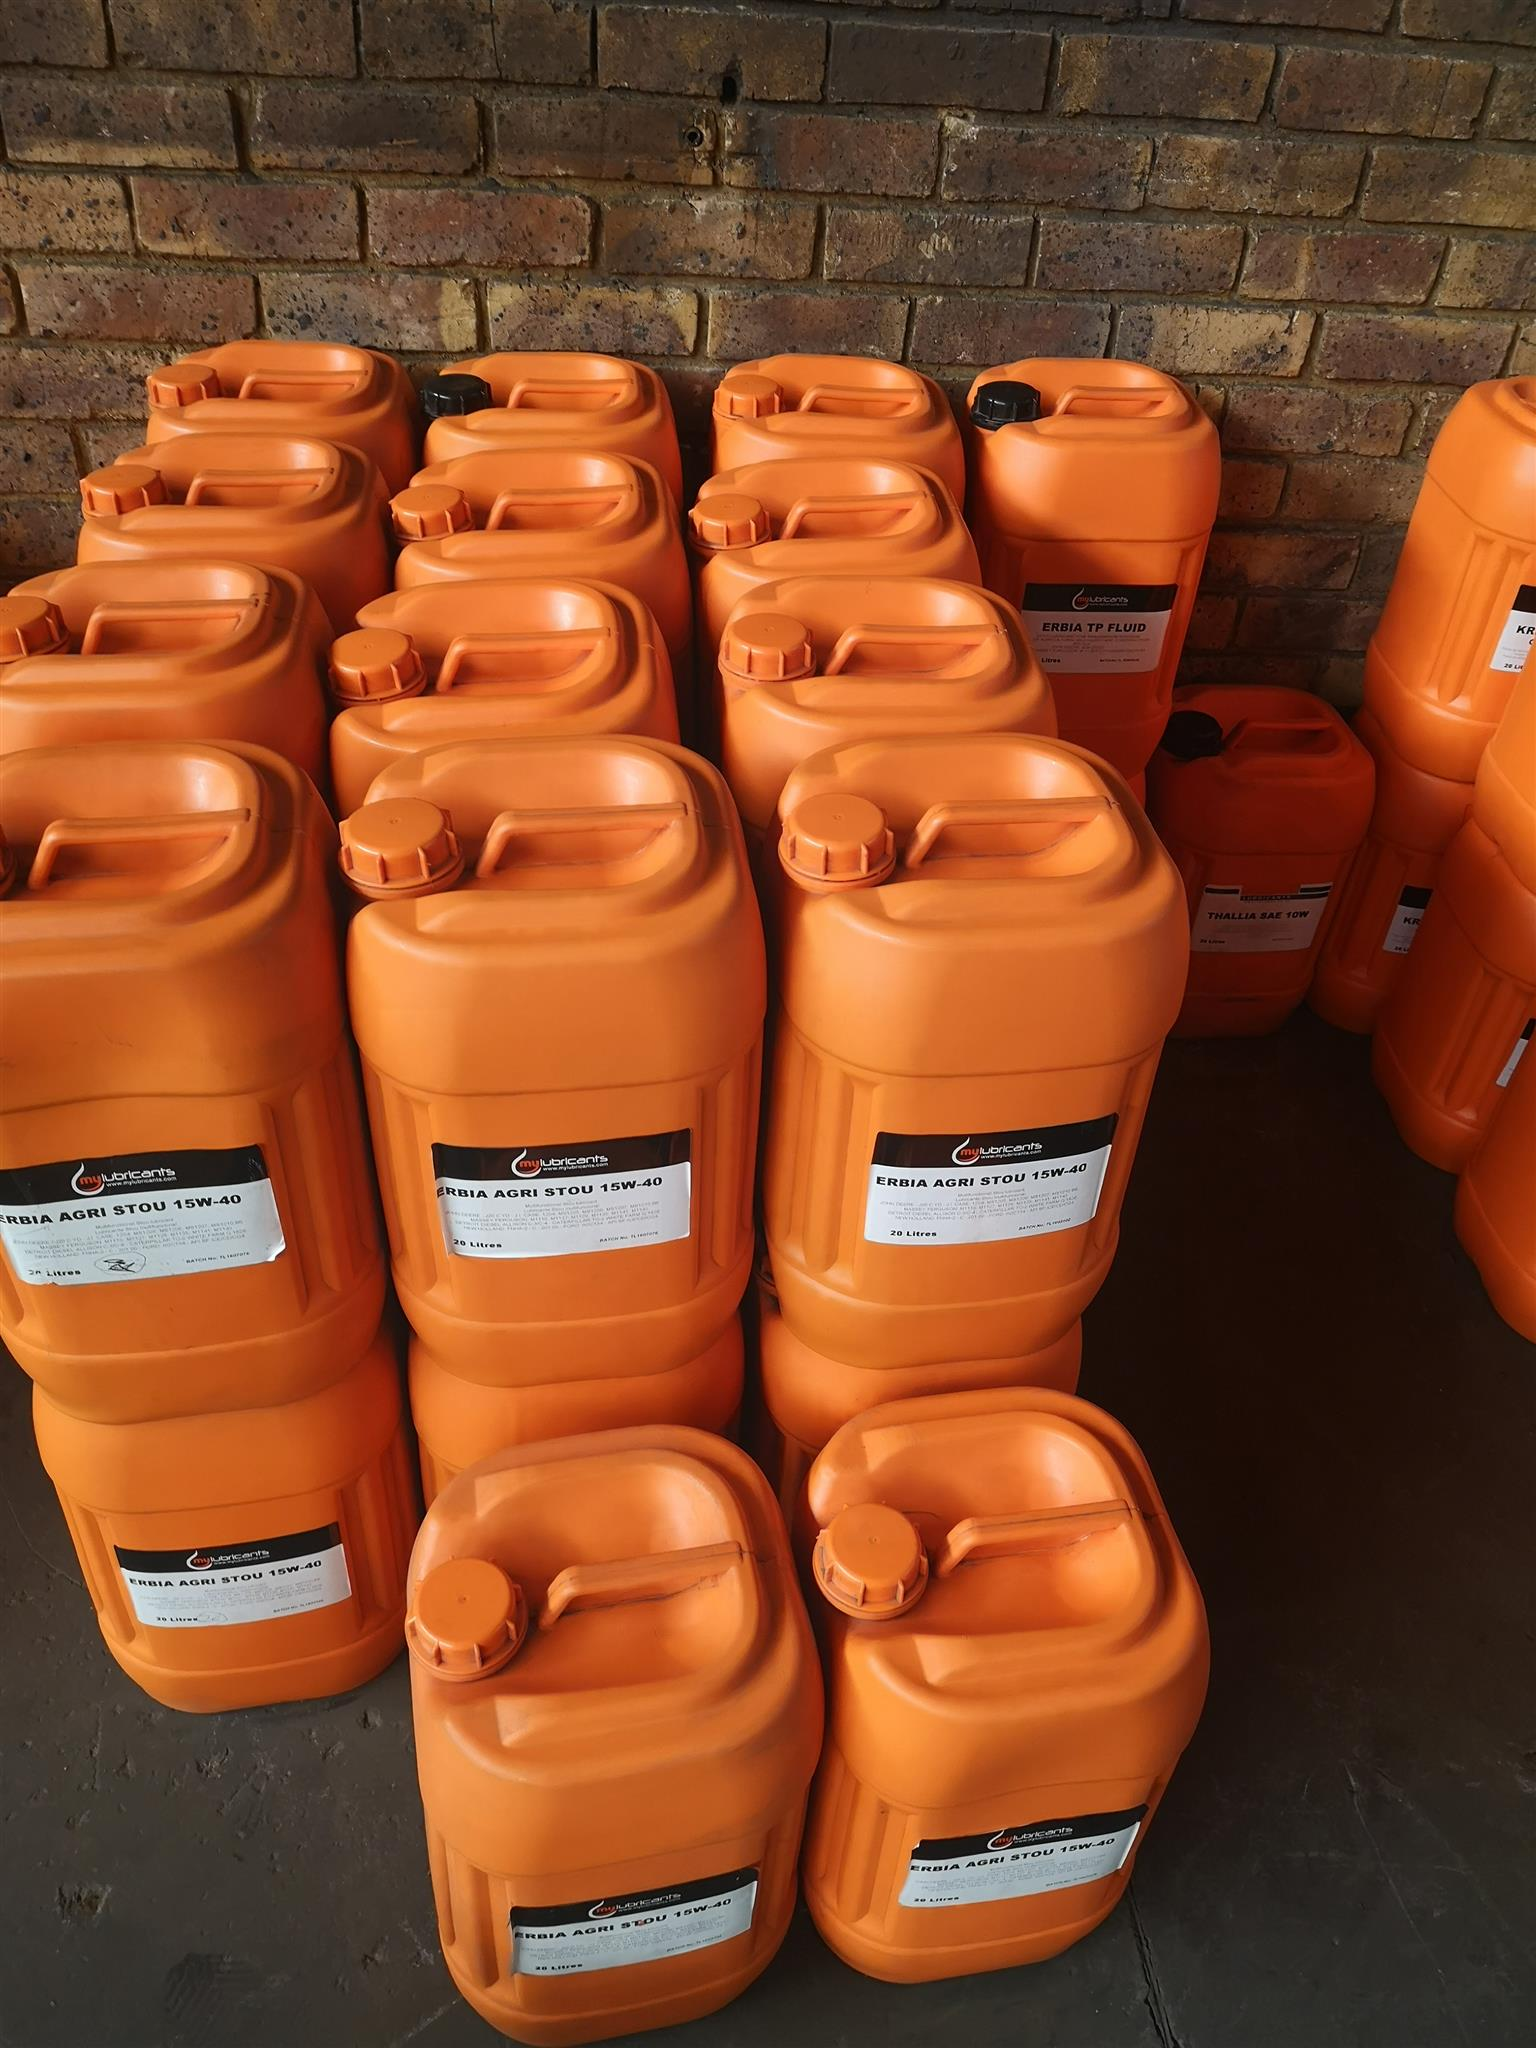 LUBRICANT DISCOUNTED STOCK CLEARANCE SALE FOR VEHICLES, TRUCKS AND BUSES